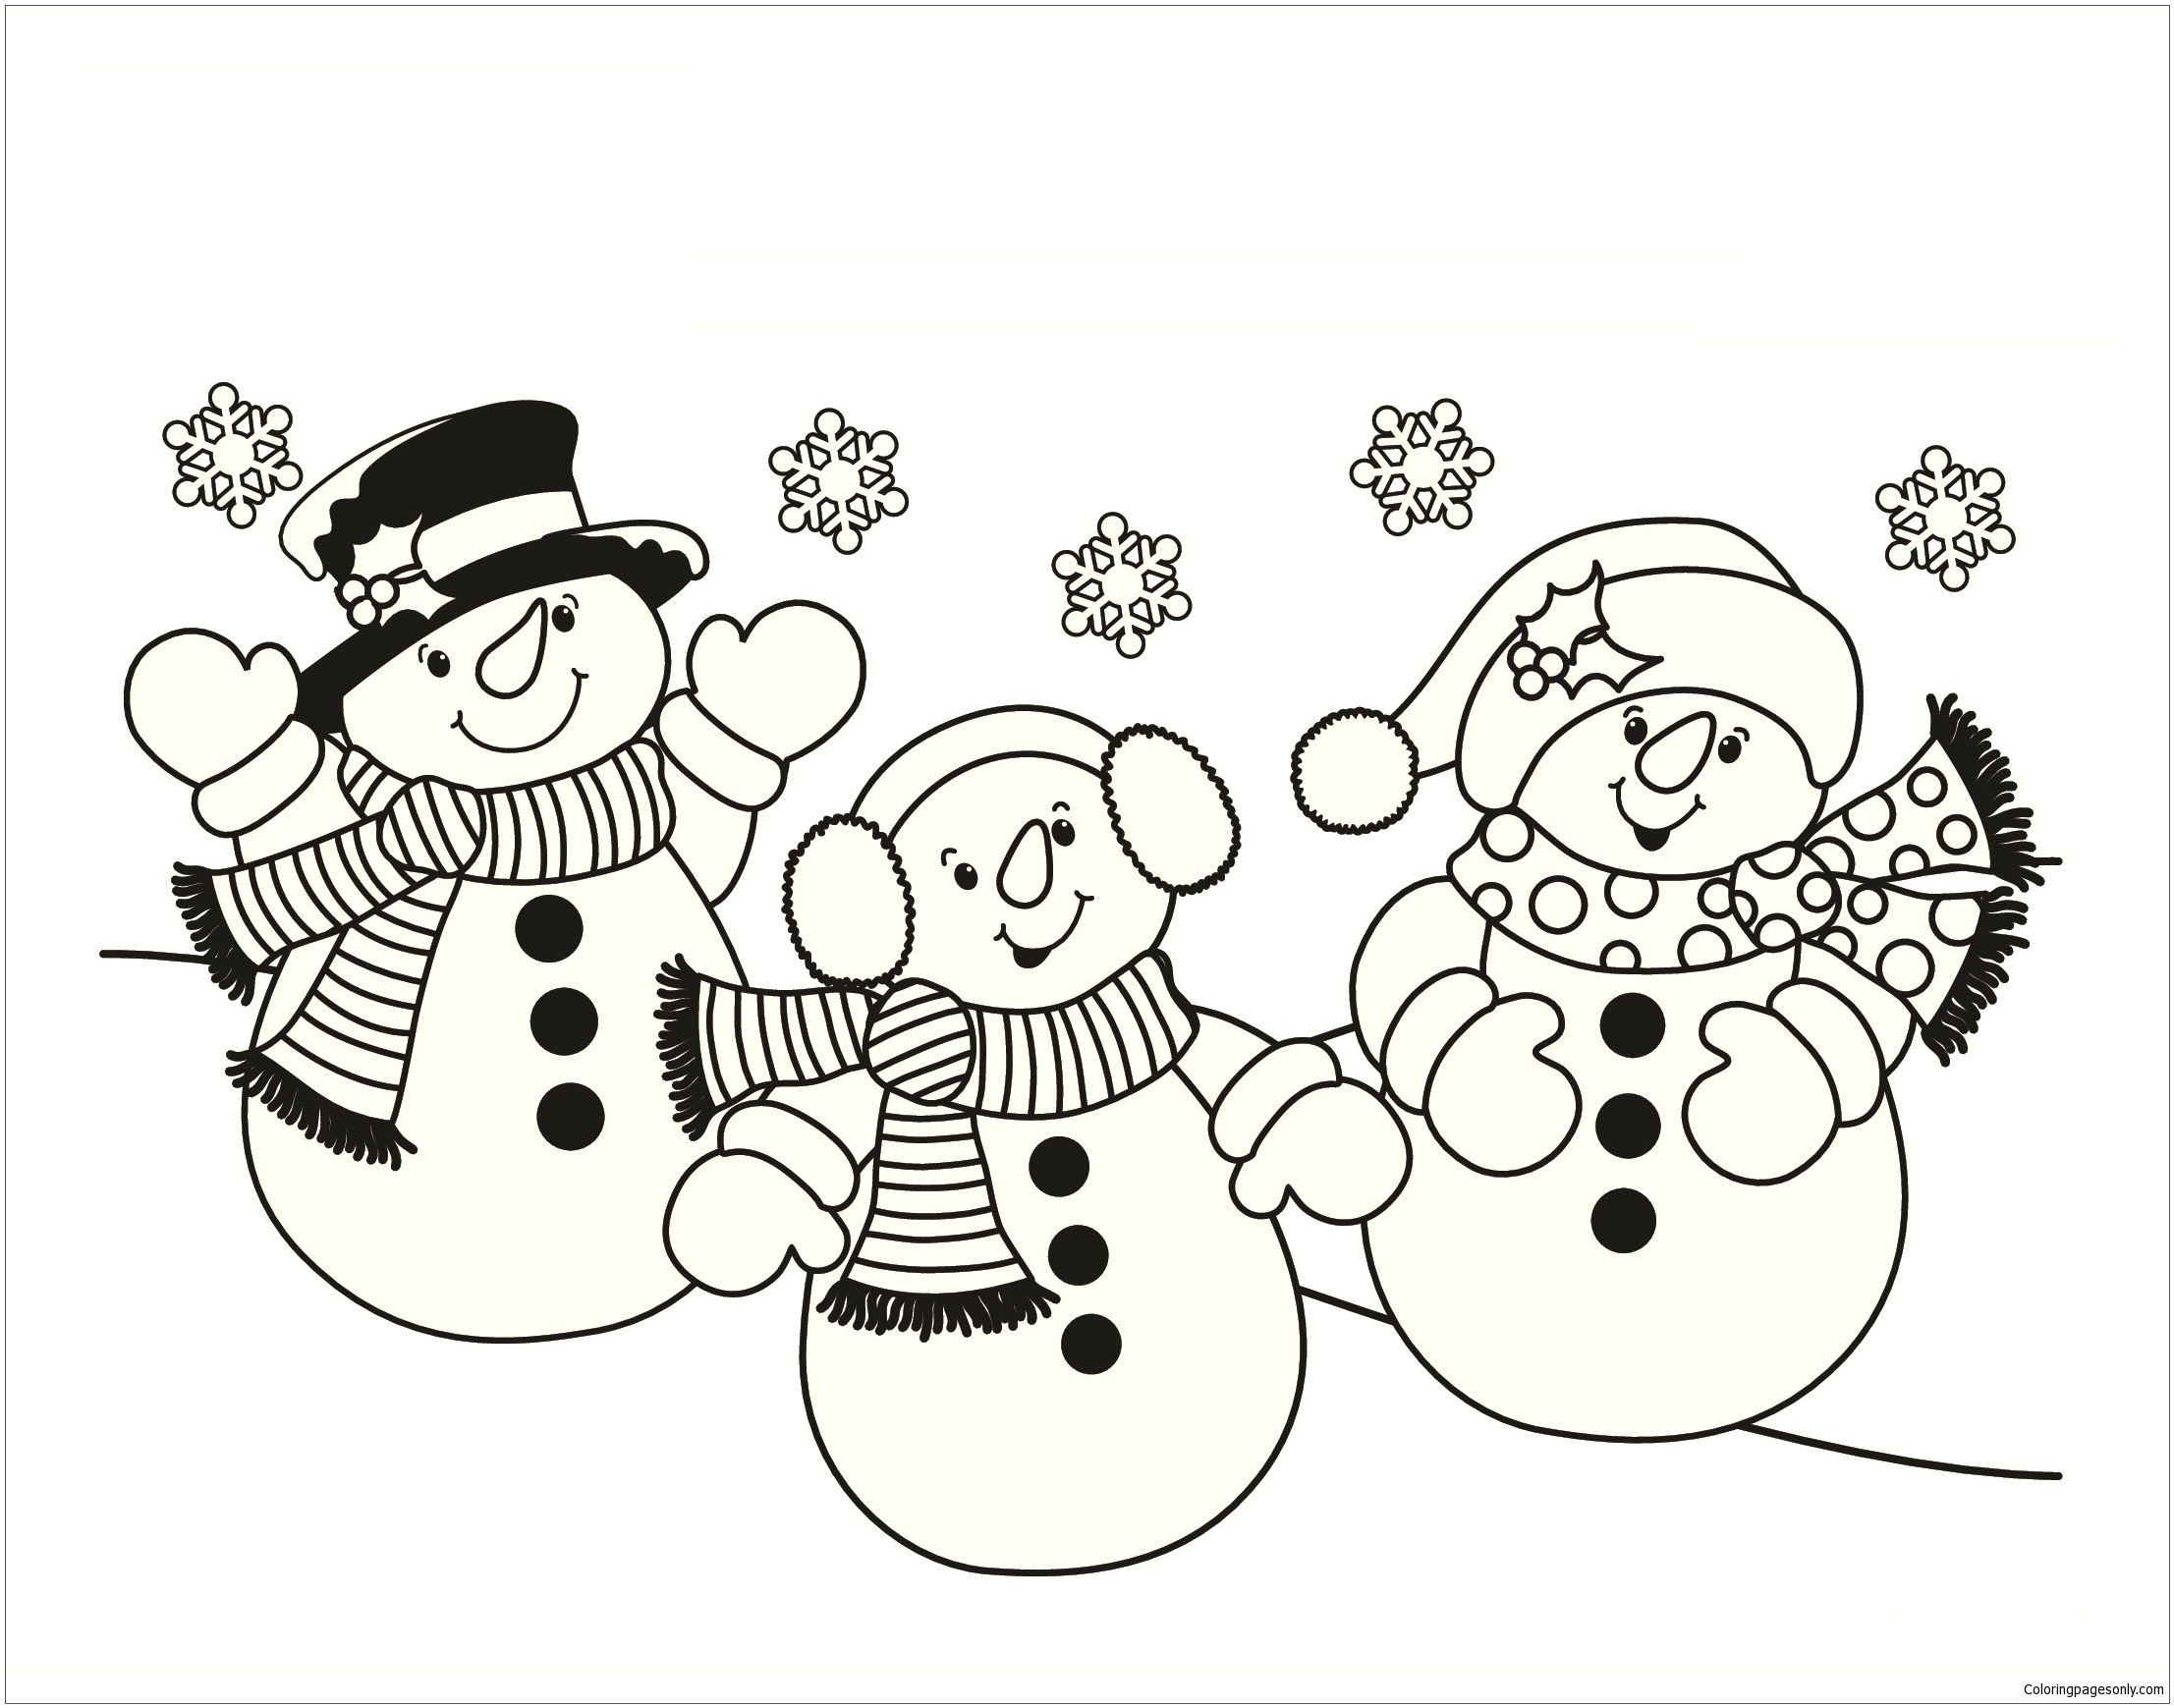 Three snowmen coloring page free coloring pages online for Coloring pages of snowman